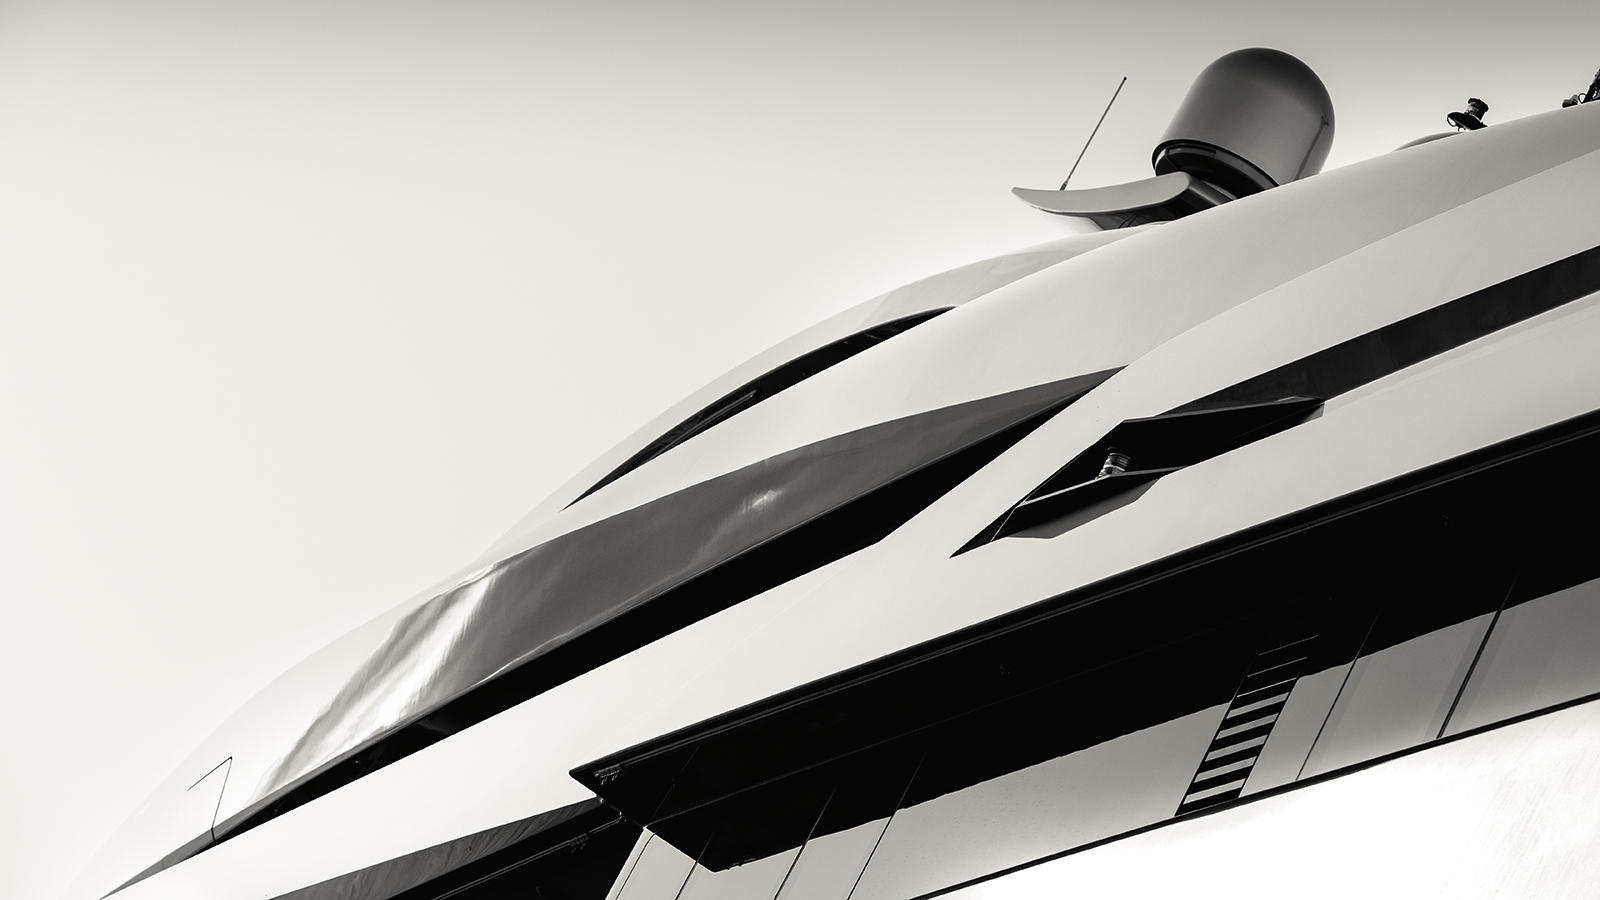 exterior-close-up-of-the-abeking-and-rasmussen-superyacht-aviva-credit-guillaume-plisson